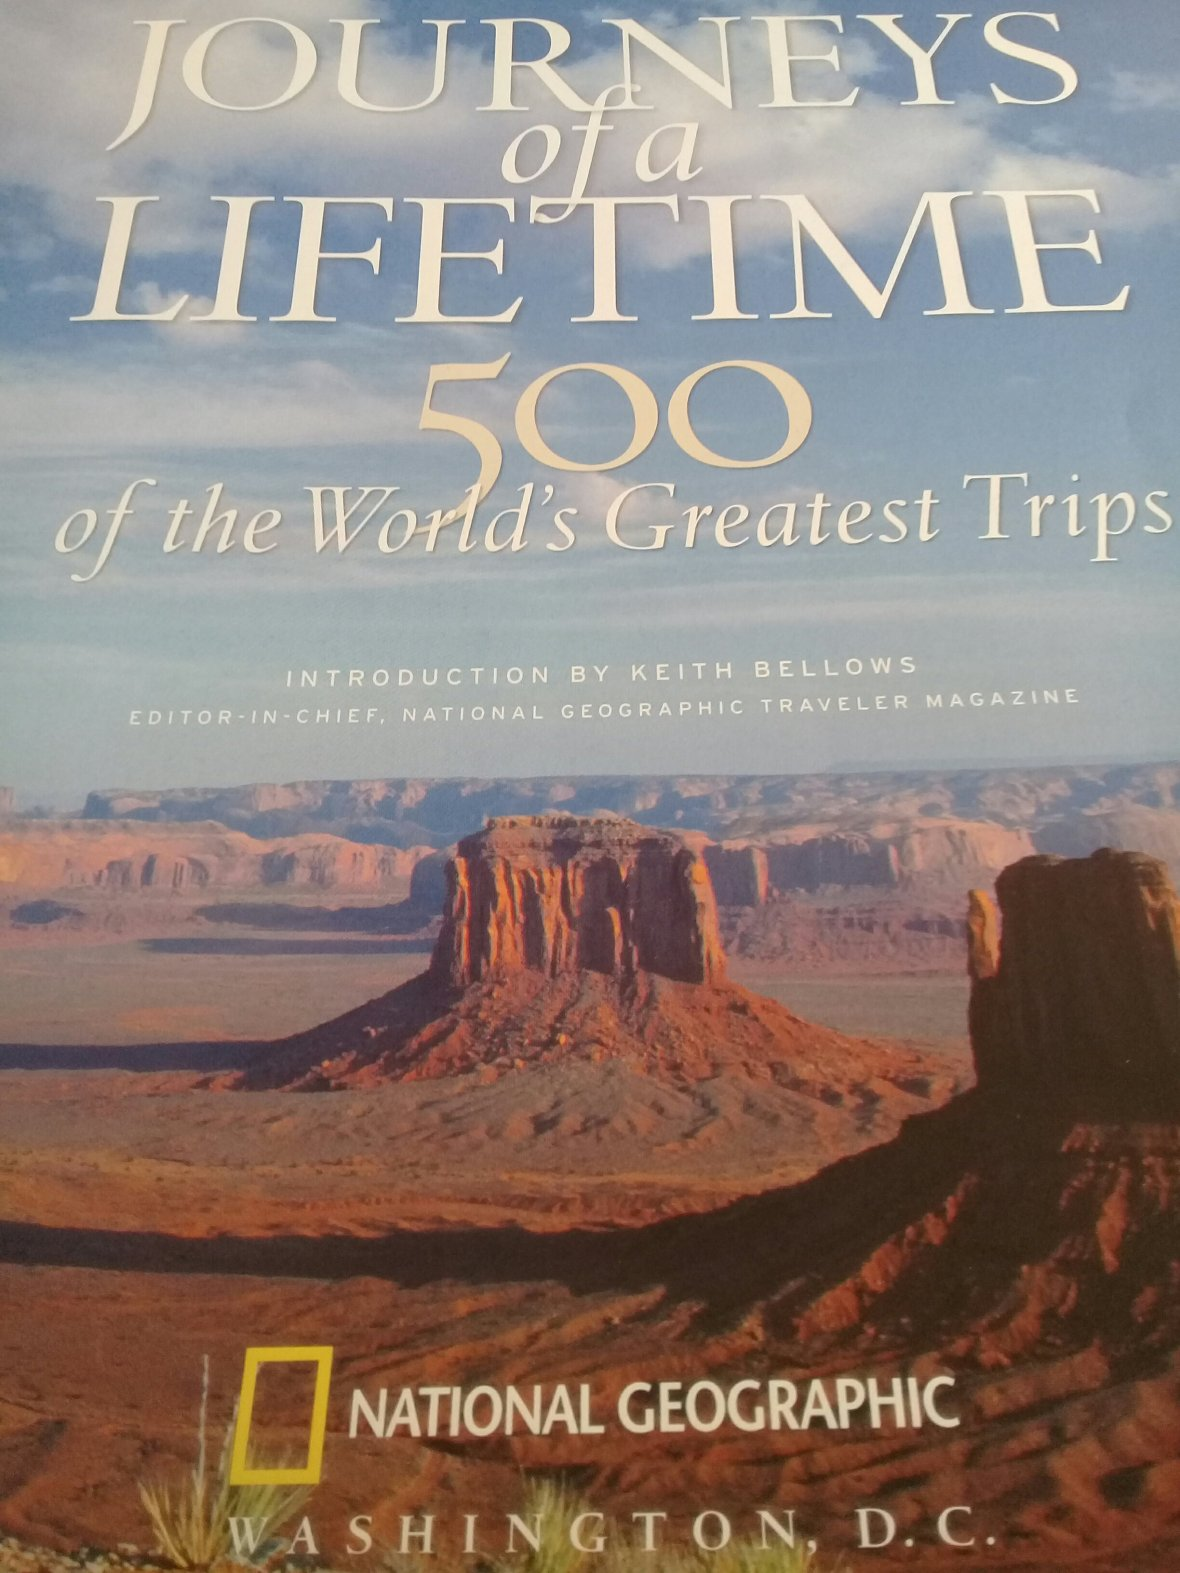 500 of the World's Greatest Trips by National Geographic